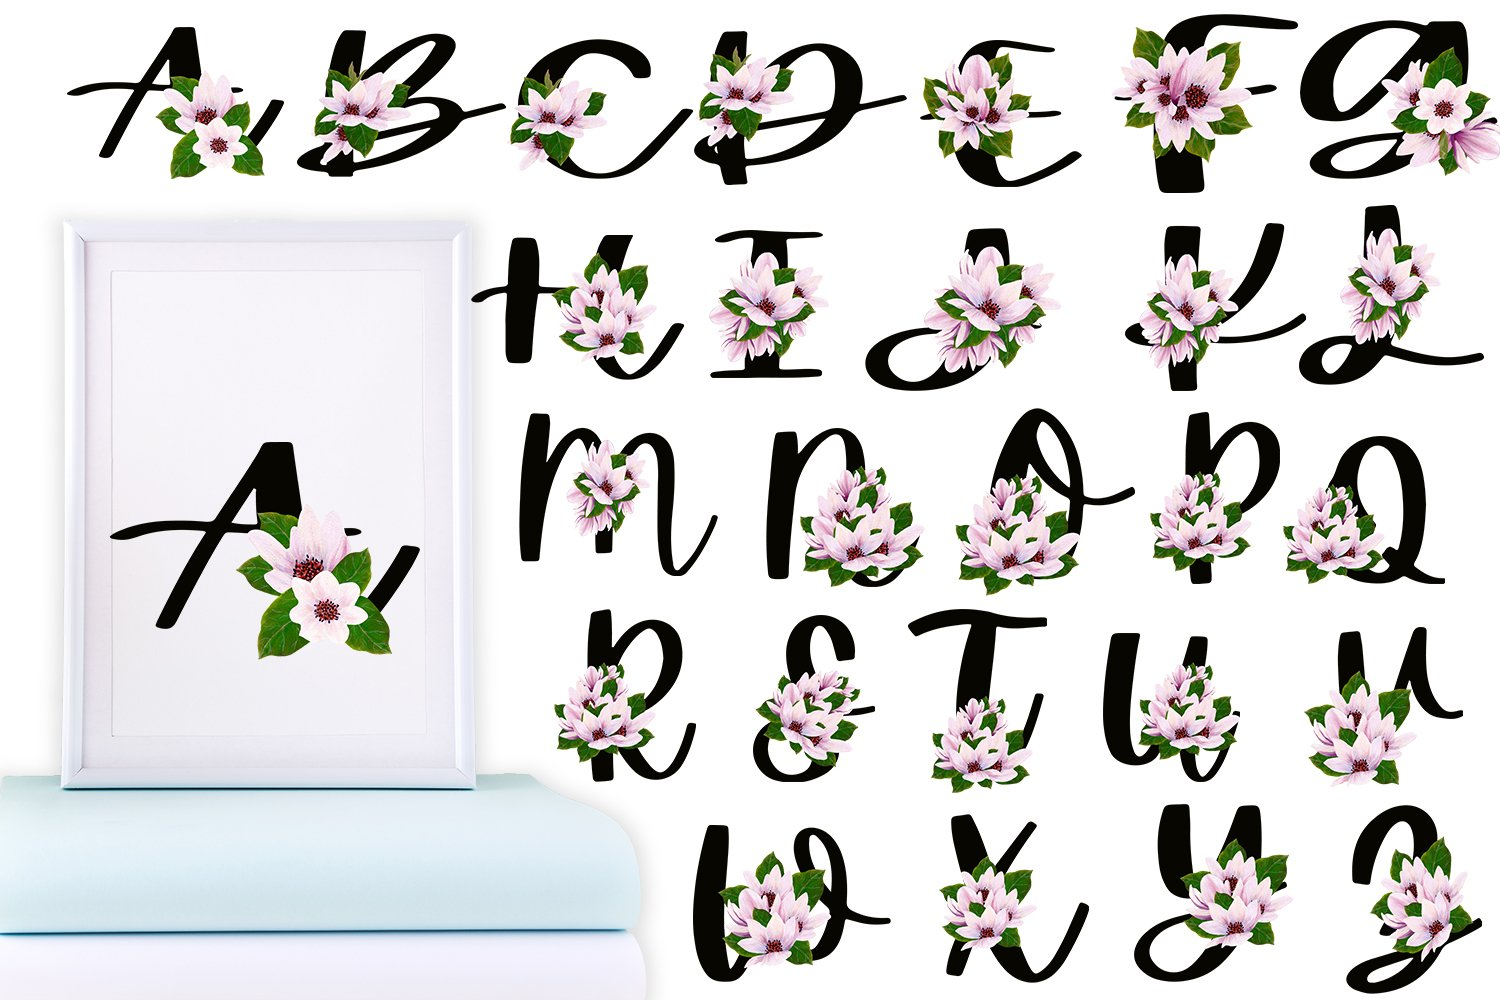 Black Magnolia Alphabet and Number example image 3